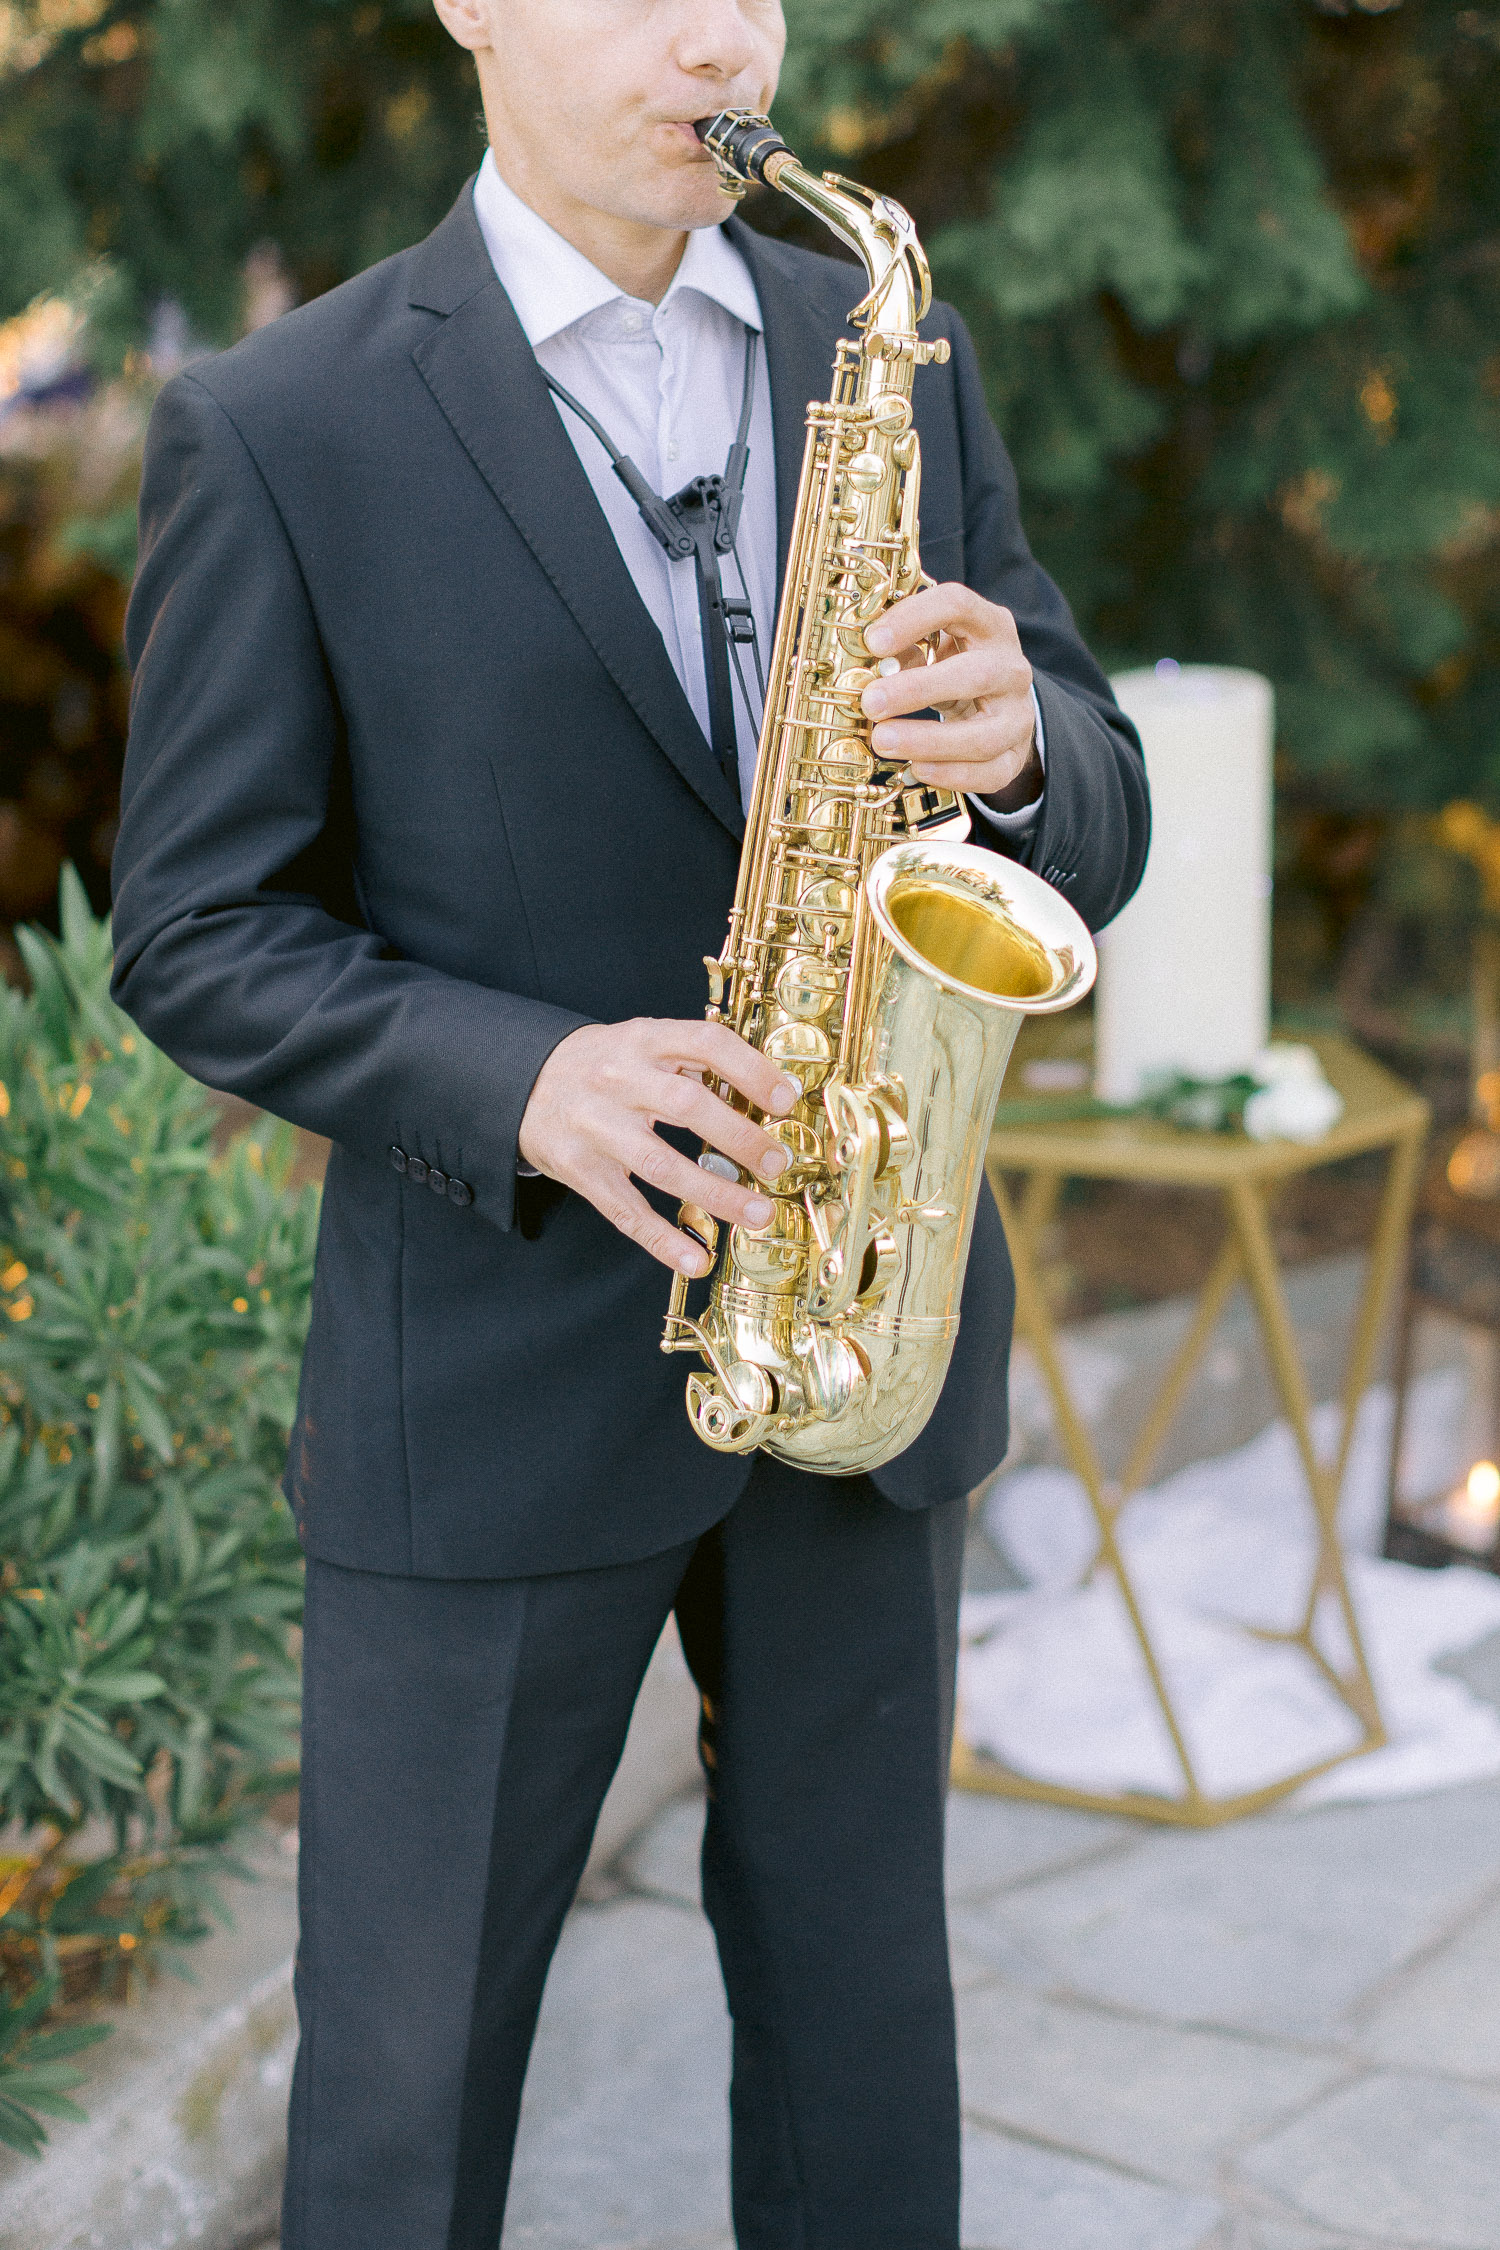 Romantic coastal wedding sax player welcome wedding guests